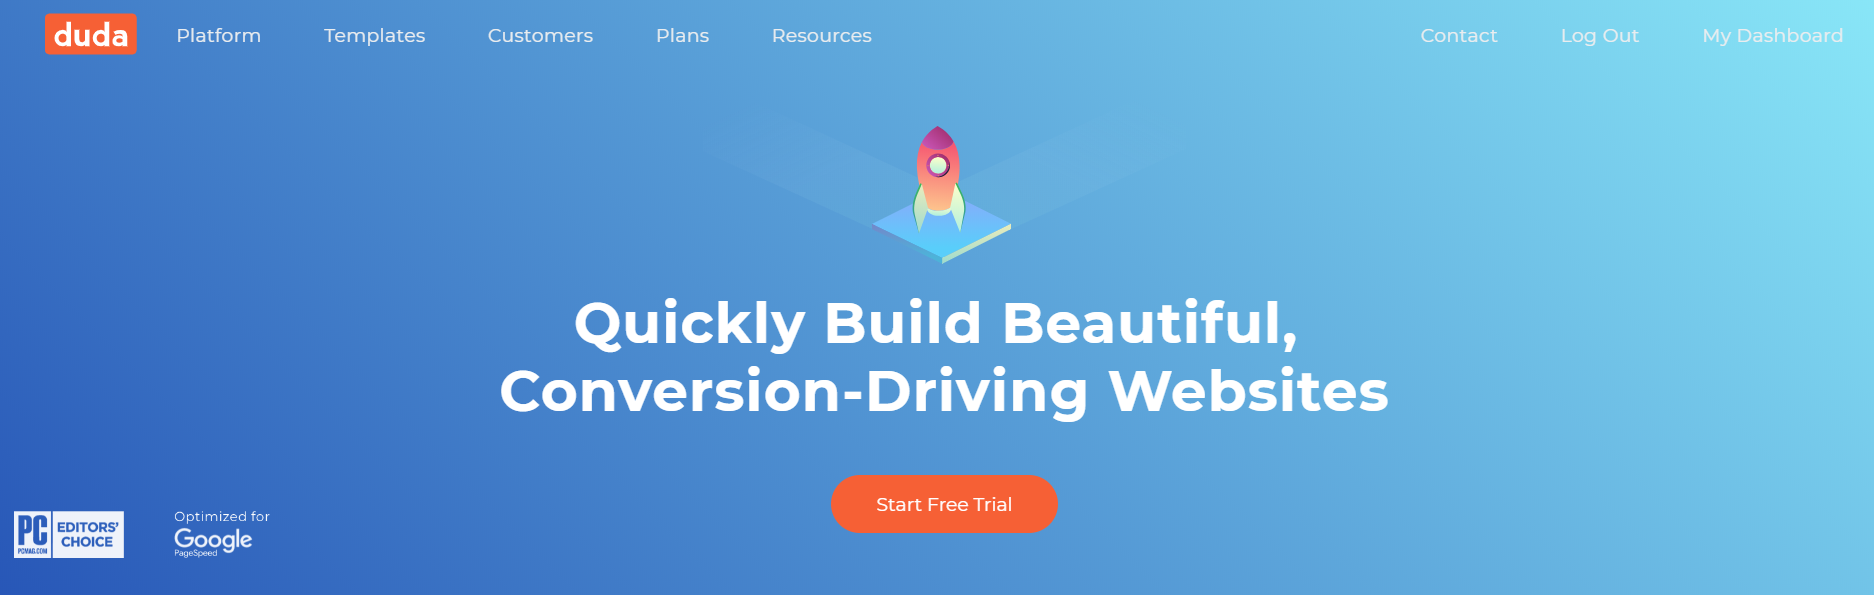 Duda Website Builder Coupon Codes- Build Websites at Scale